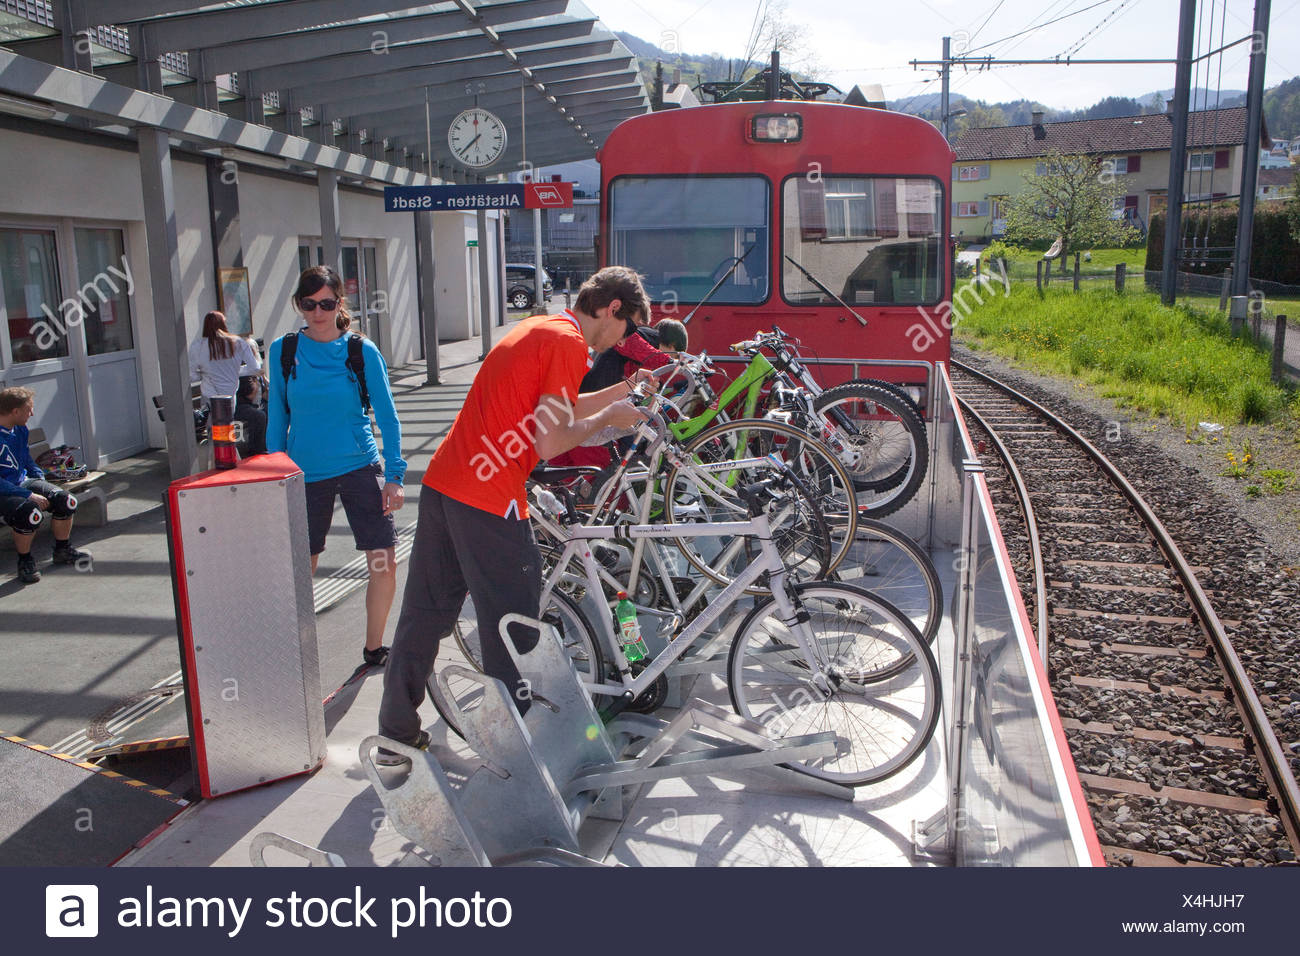 Veloverlad, old sites, road, railway, train, railroad, canton, SG, St. Gallen, bicycle, bicycles, bike, riding a bicycle, Switze - Stock Image